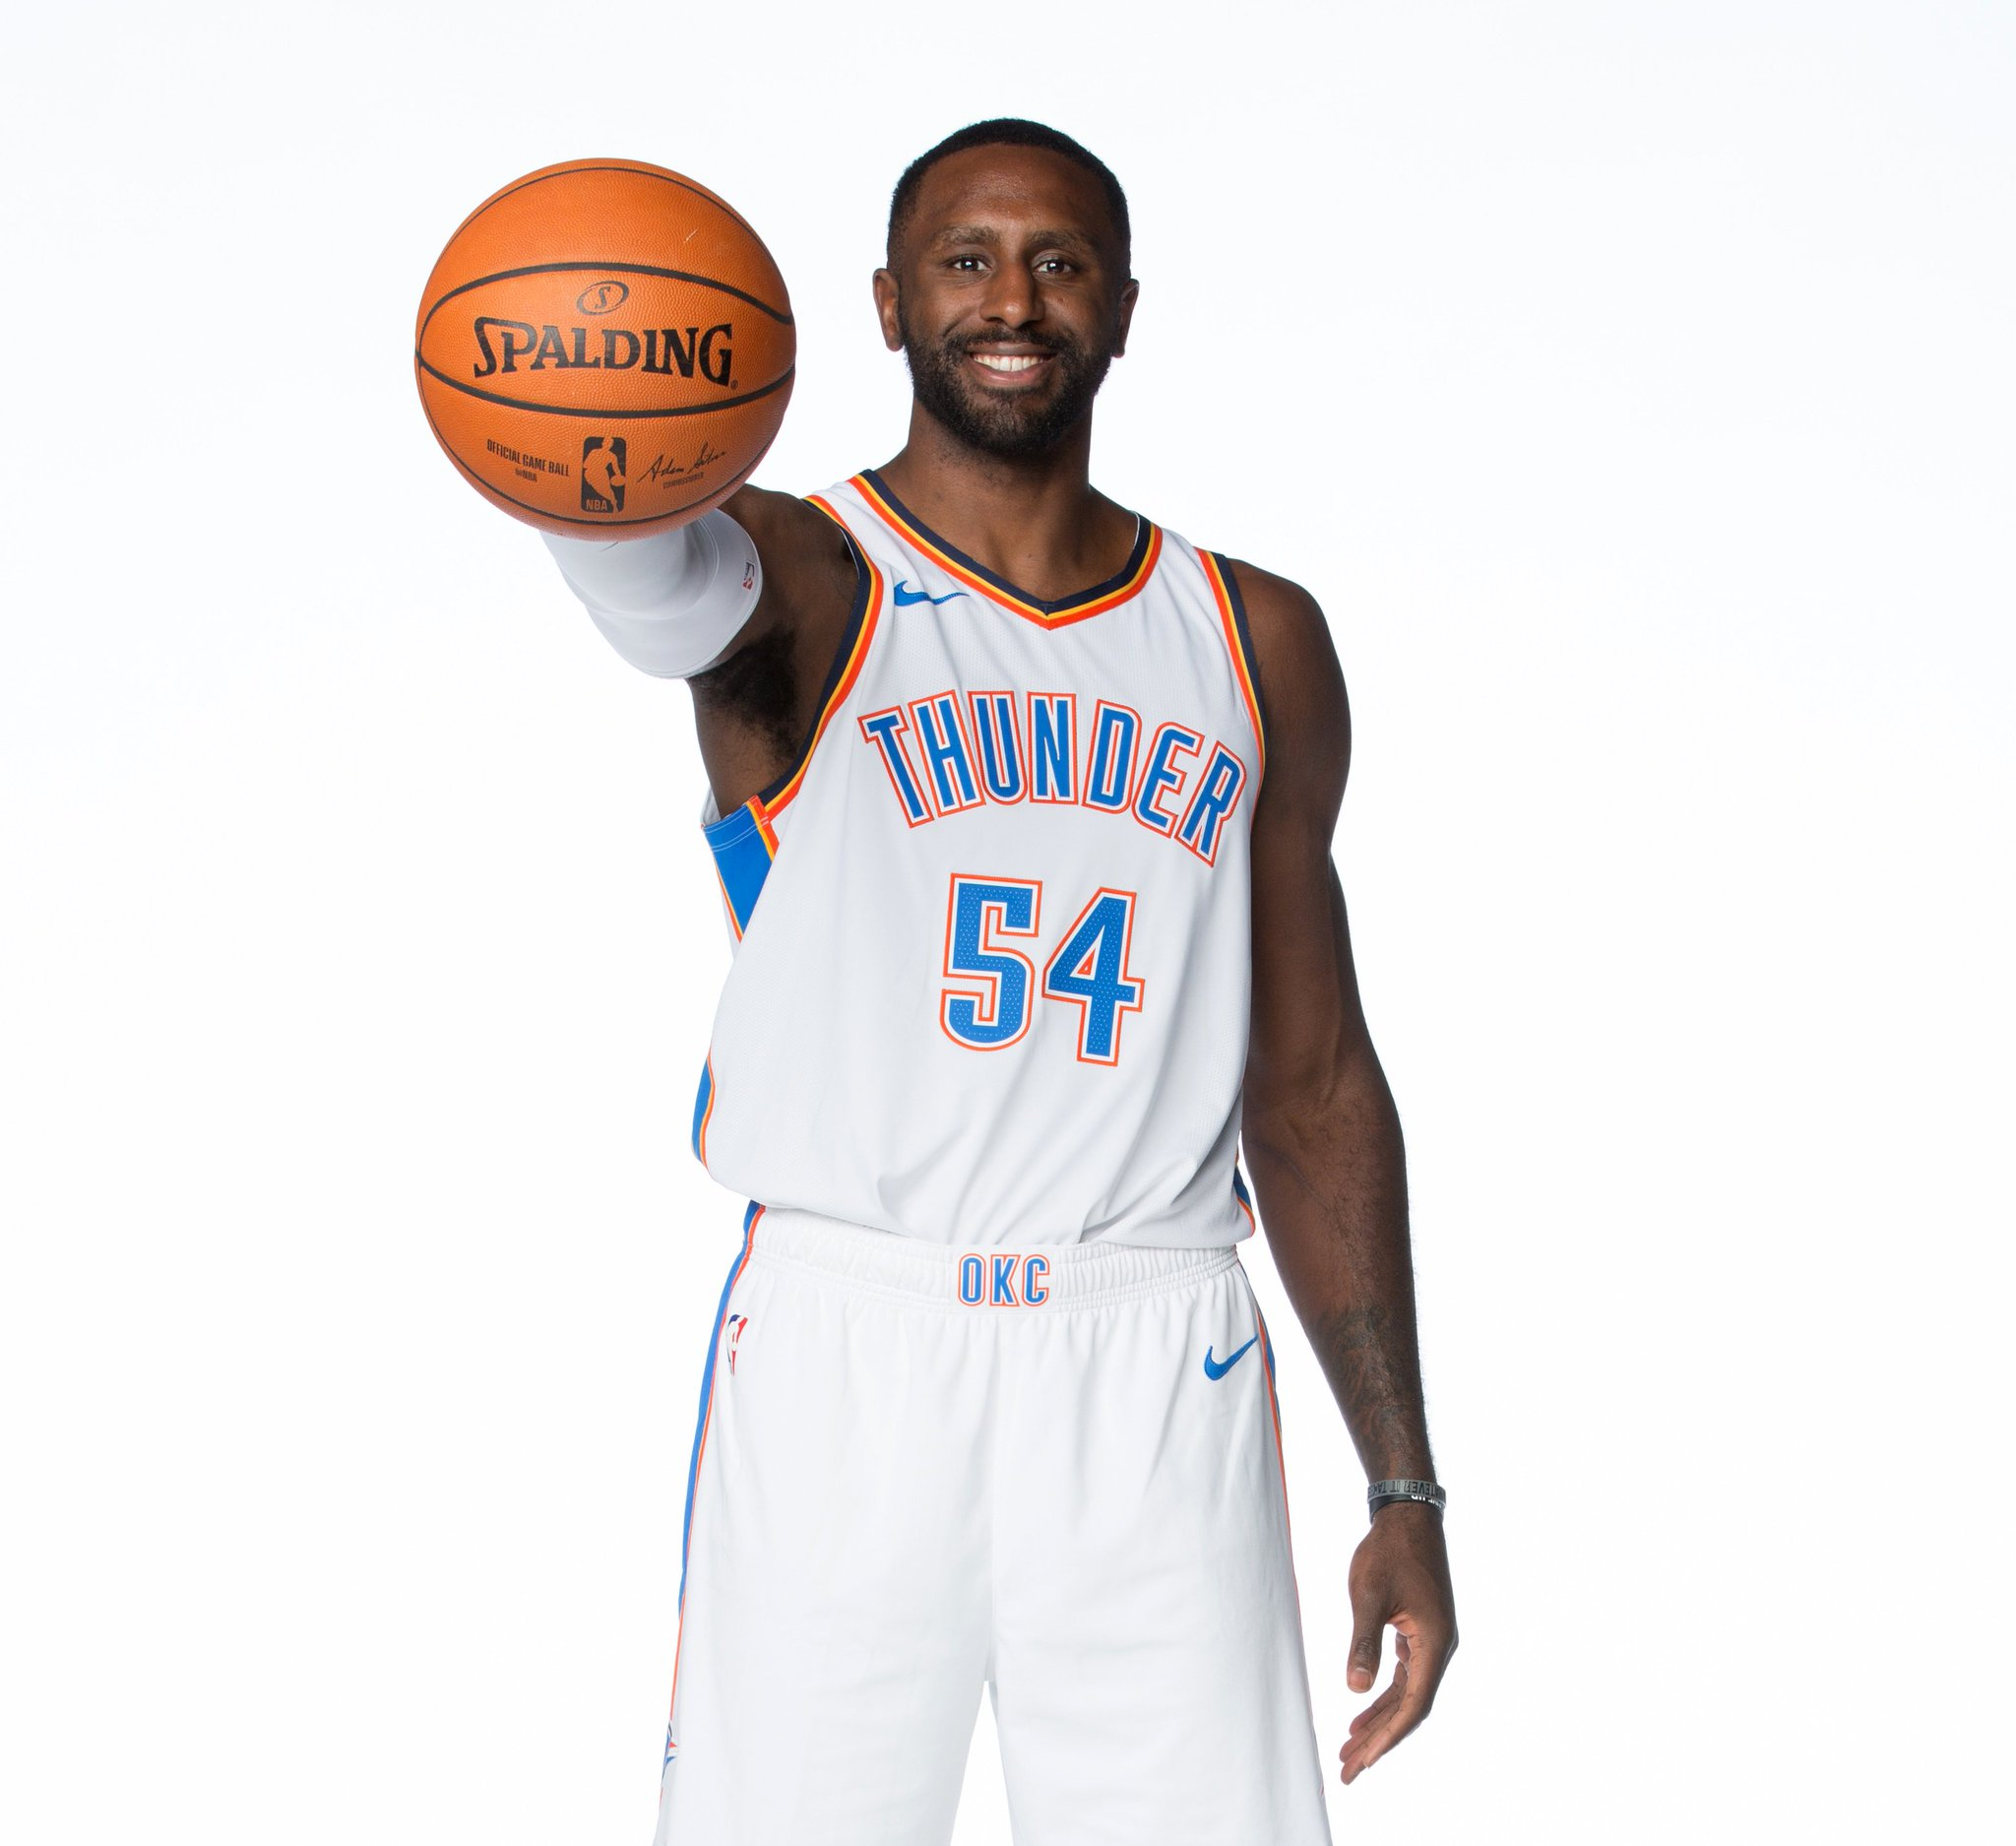 Join us in wishing @pdpatt of the @okcthunder a HAPPY 30th BIRTHDAY!   #NBABDAY #ThunderUp https://t.co/xKz4QnJAMz